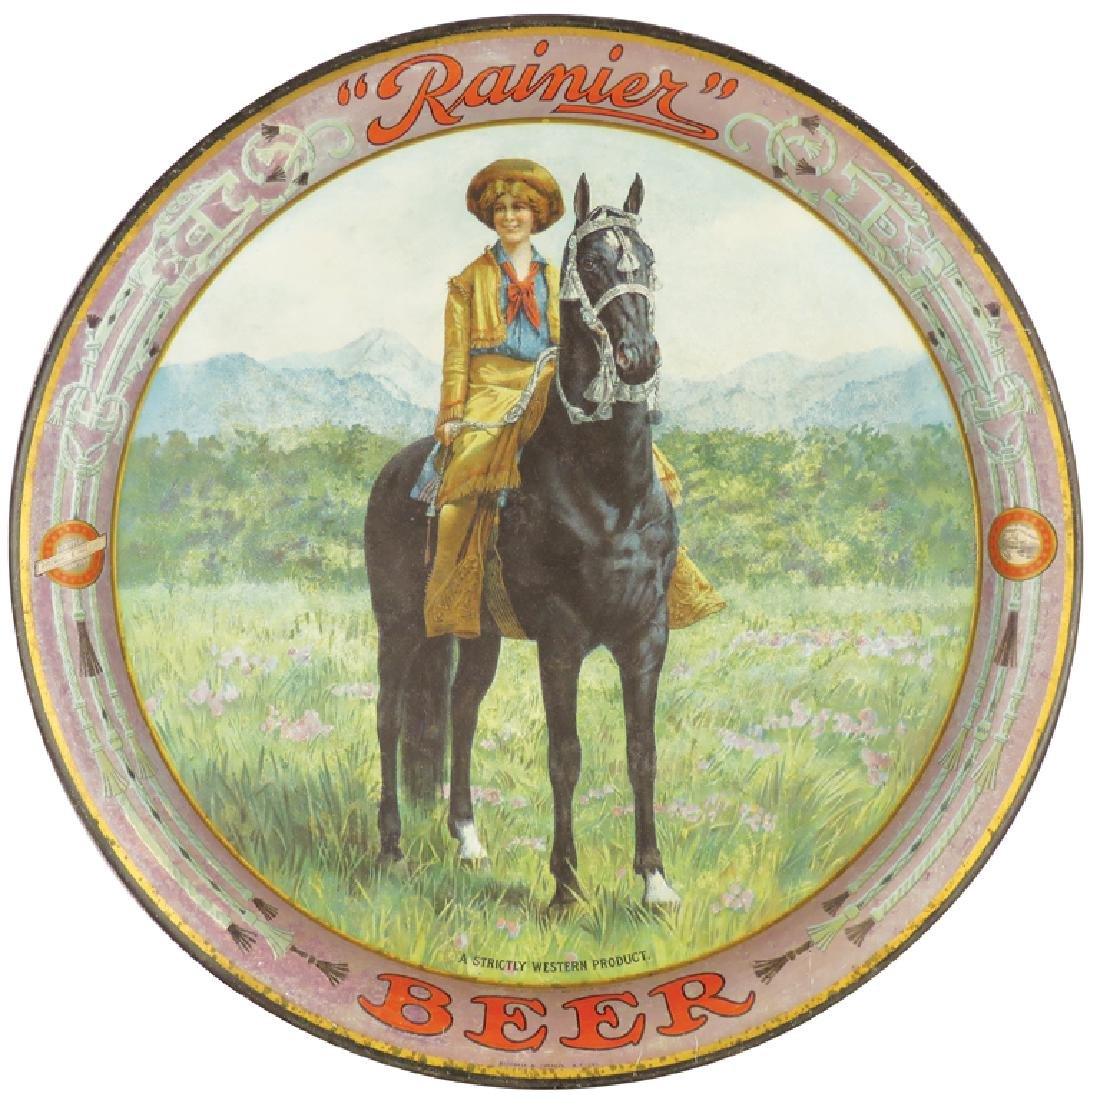 Rainier Beer Serving Tray Depicting Cowgirl on horse